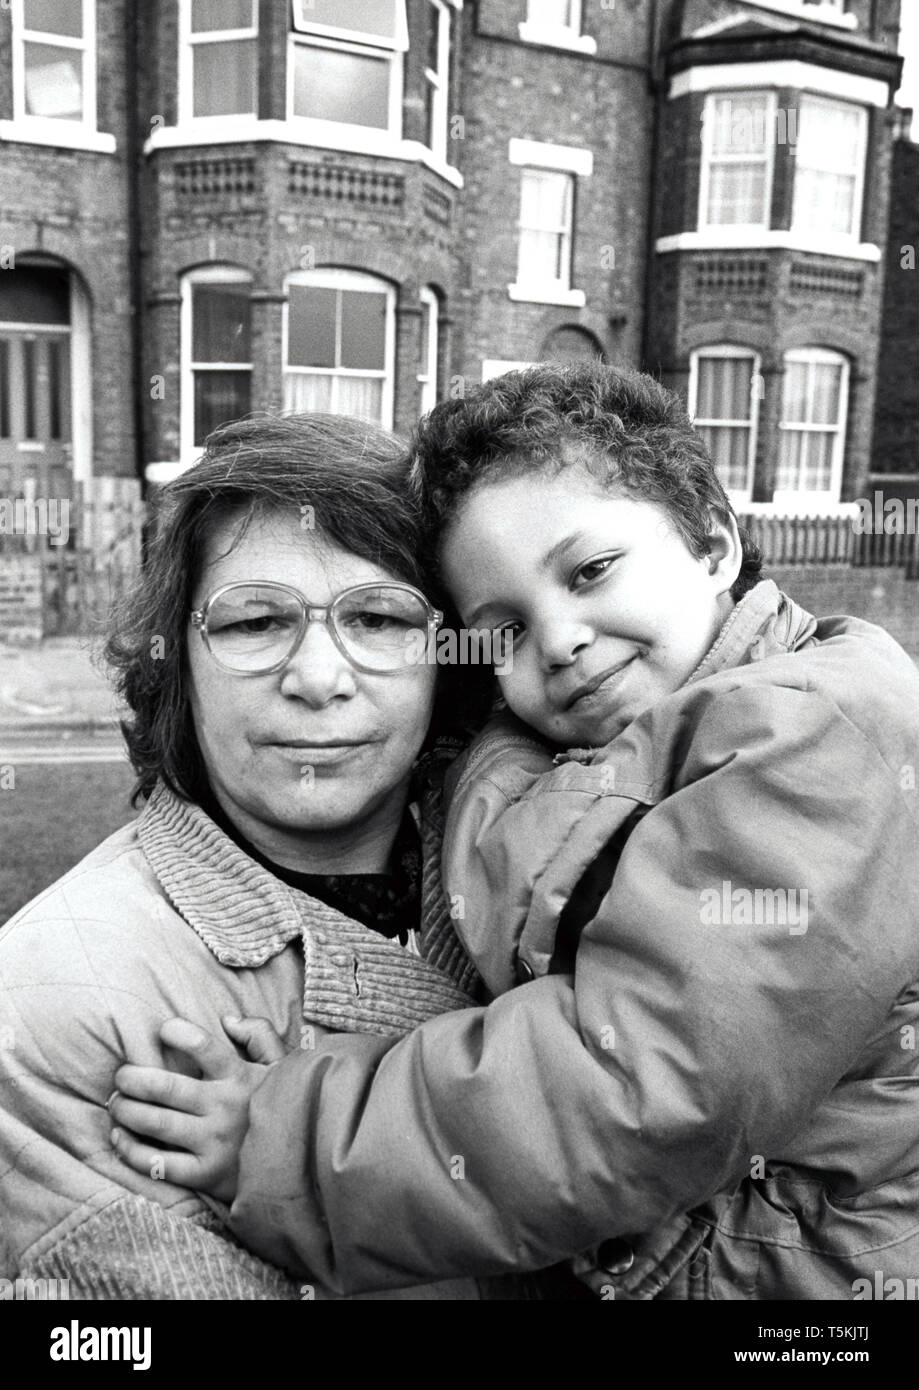 Mother and small child, UK 1989 - Stock Image